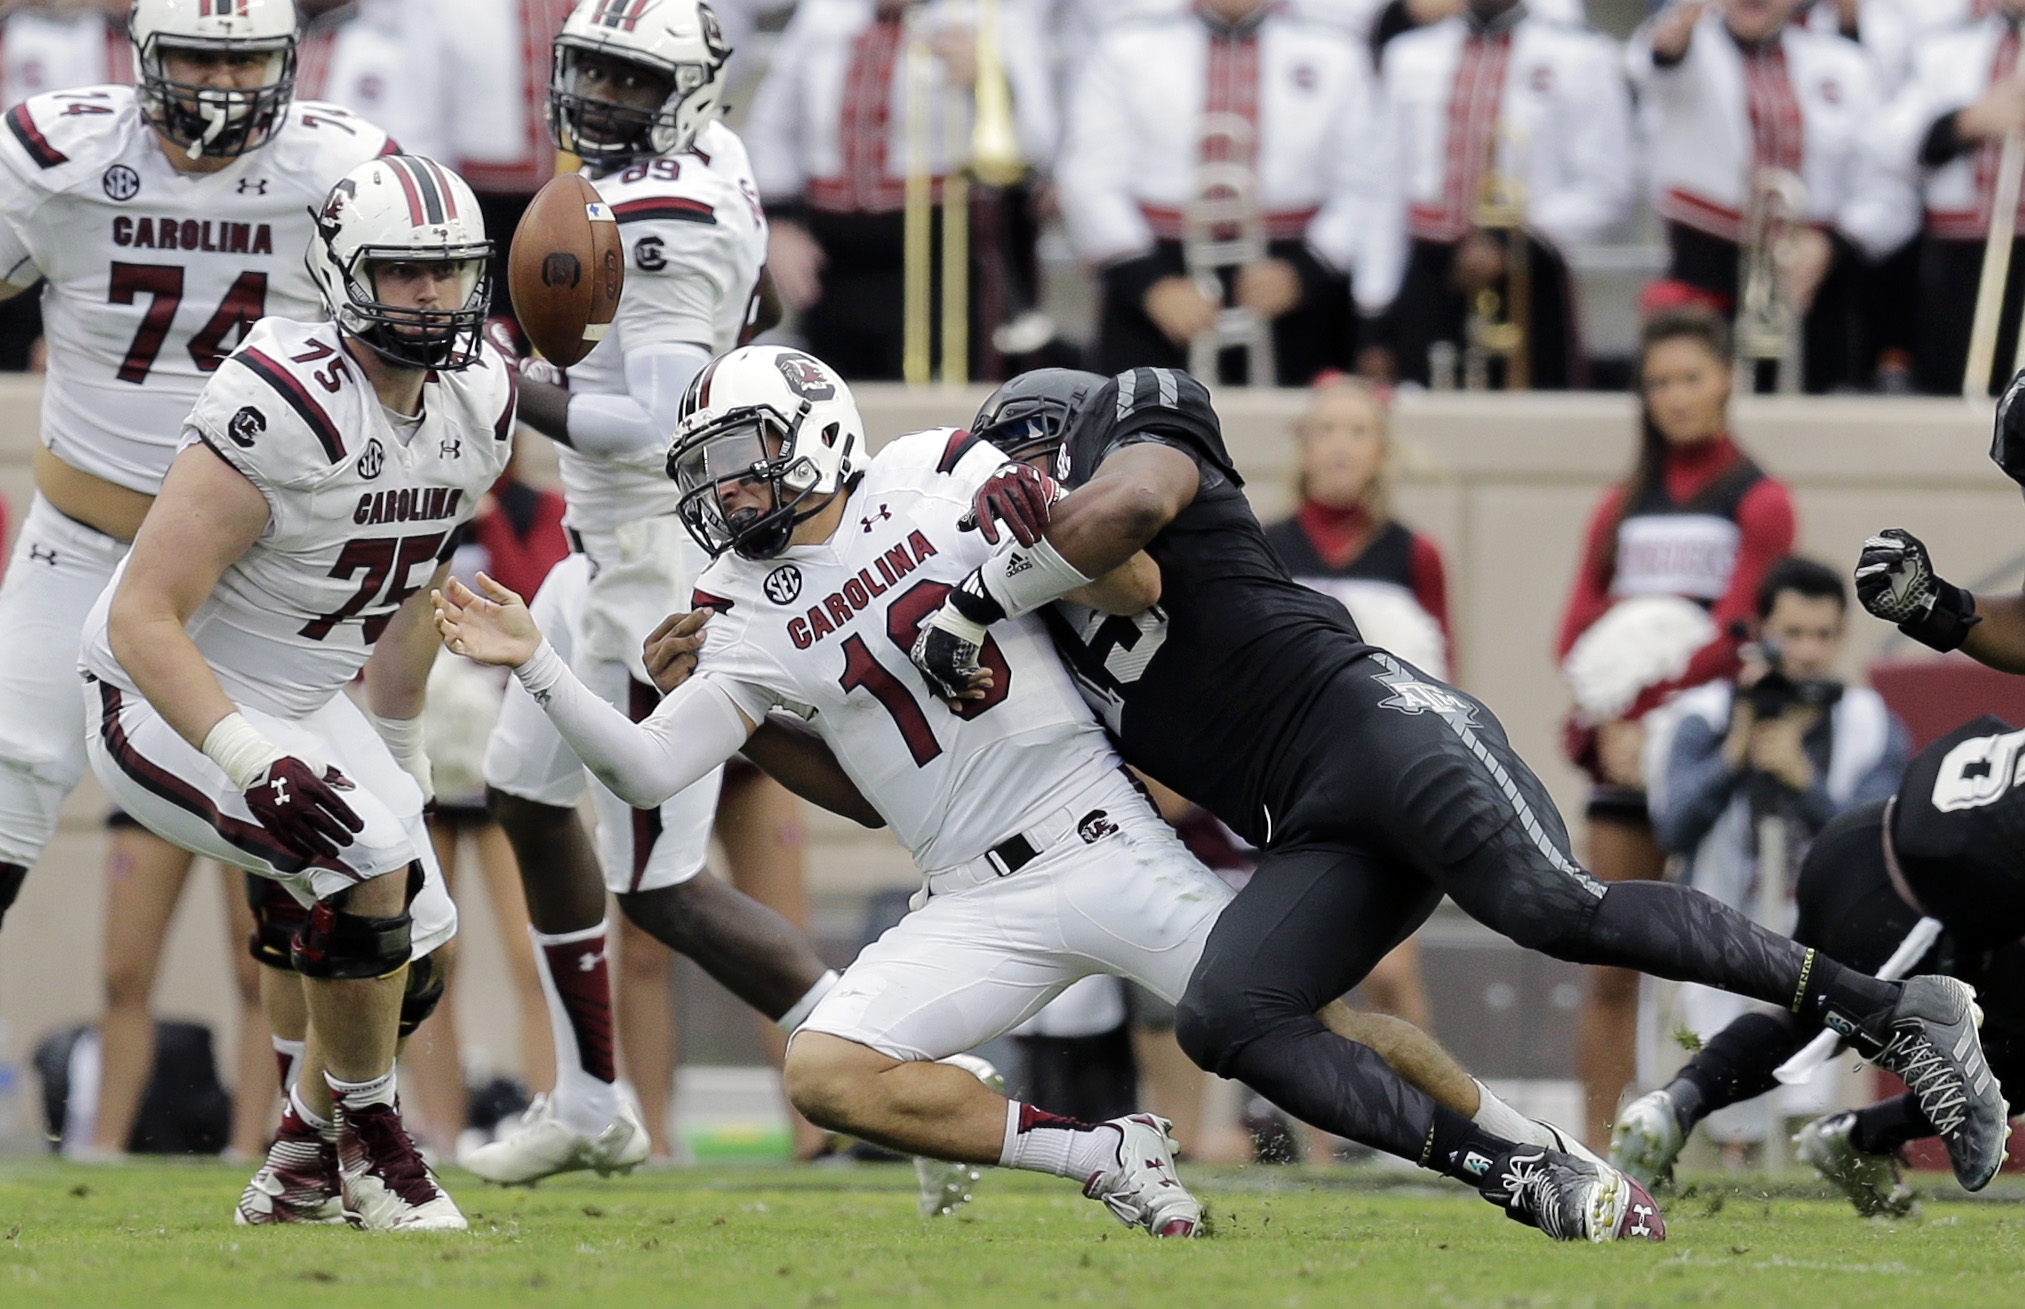 South Carolina quarterback Perry Orth (10) loses the ball as he is hit by Texas A&M defensive lineman Myles Garrett, right, during the second half of an NCAA college football game, Saturday, Oct. 31, 2015, in College Station, Texas. Texas A&M won 35-28. (